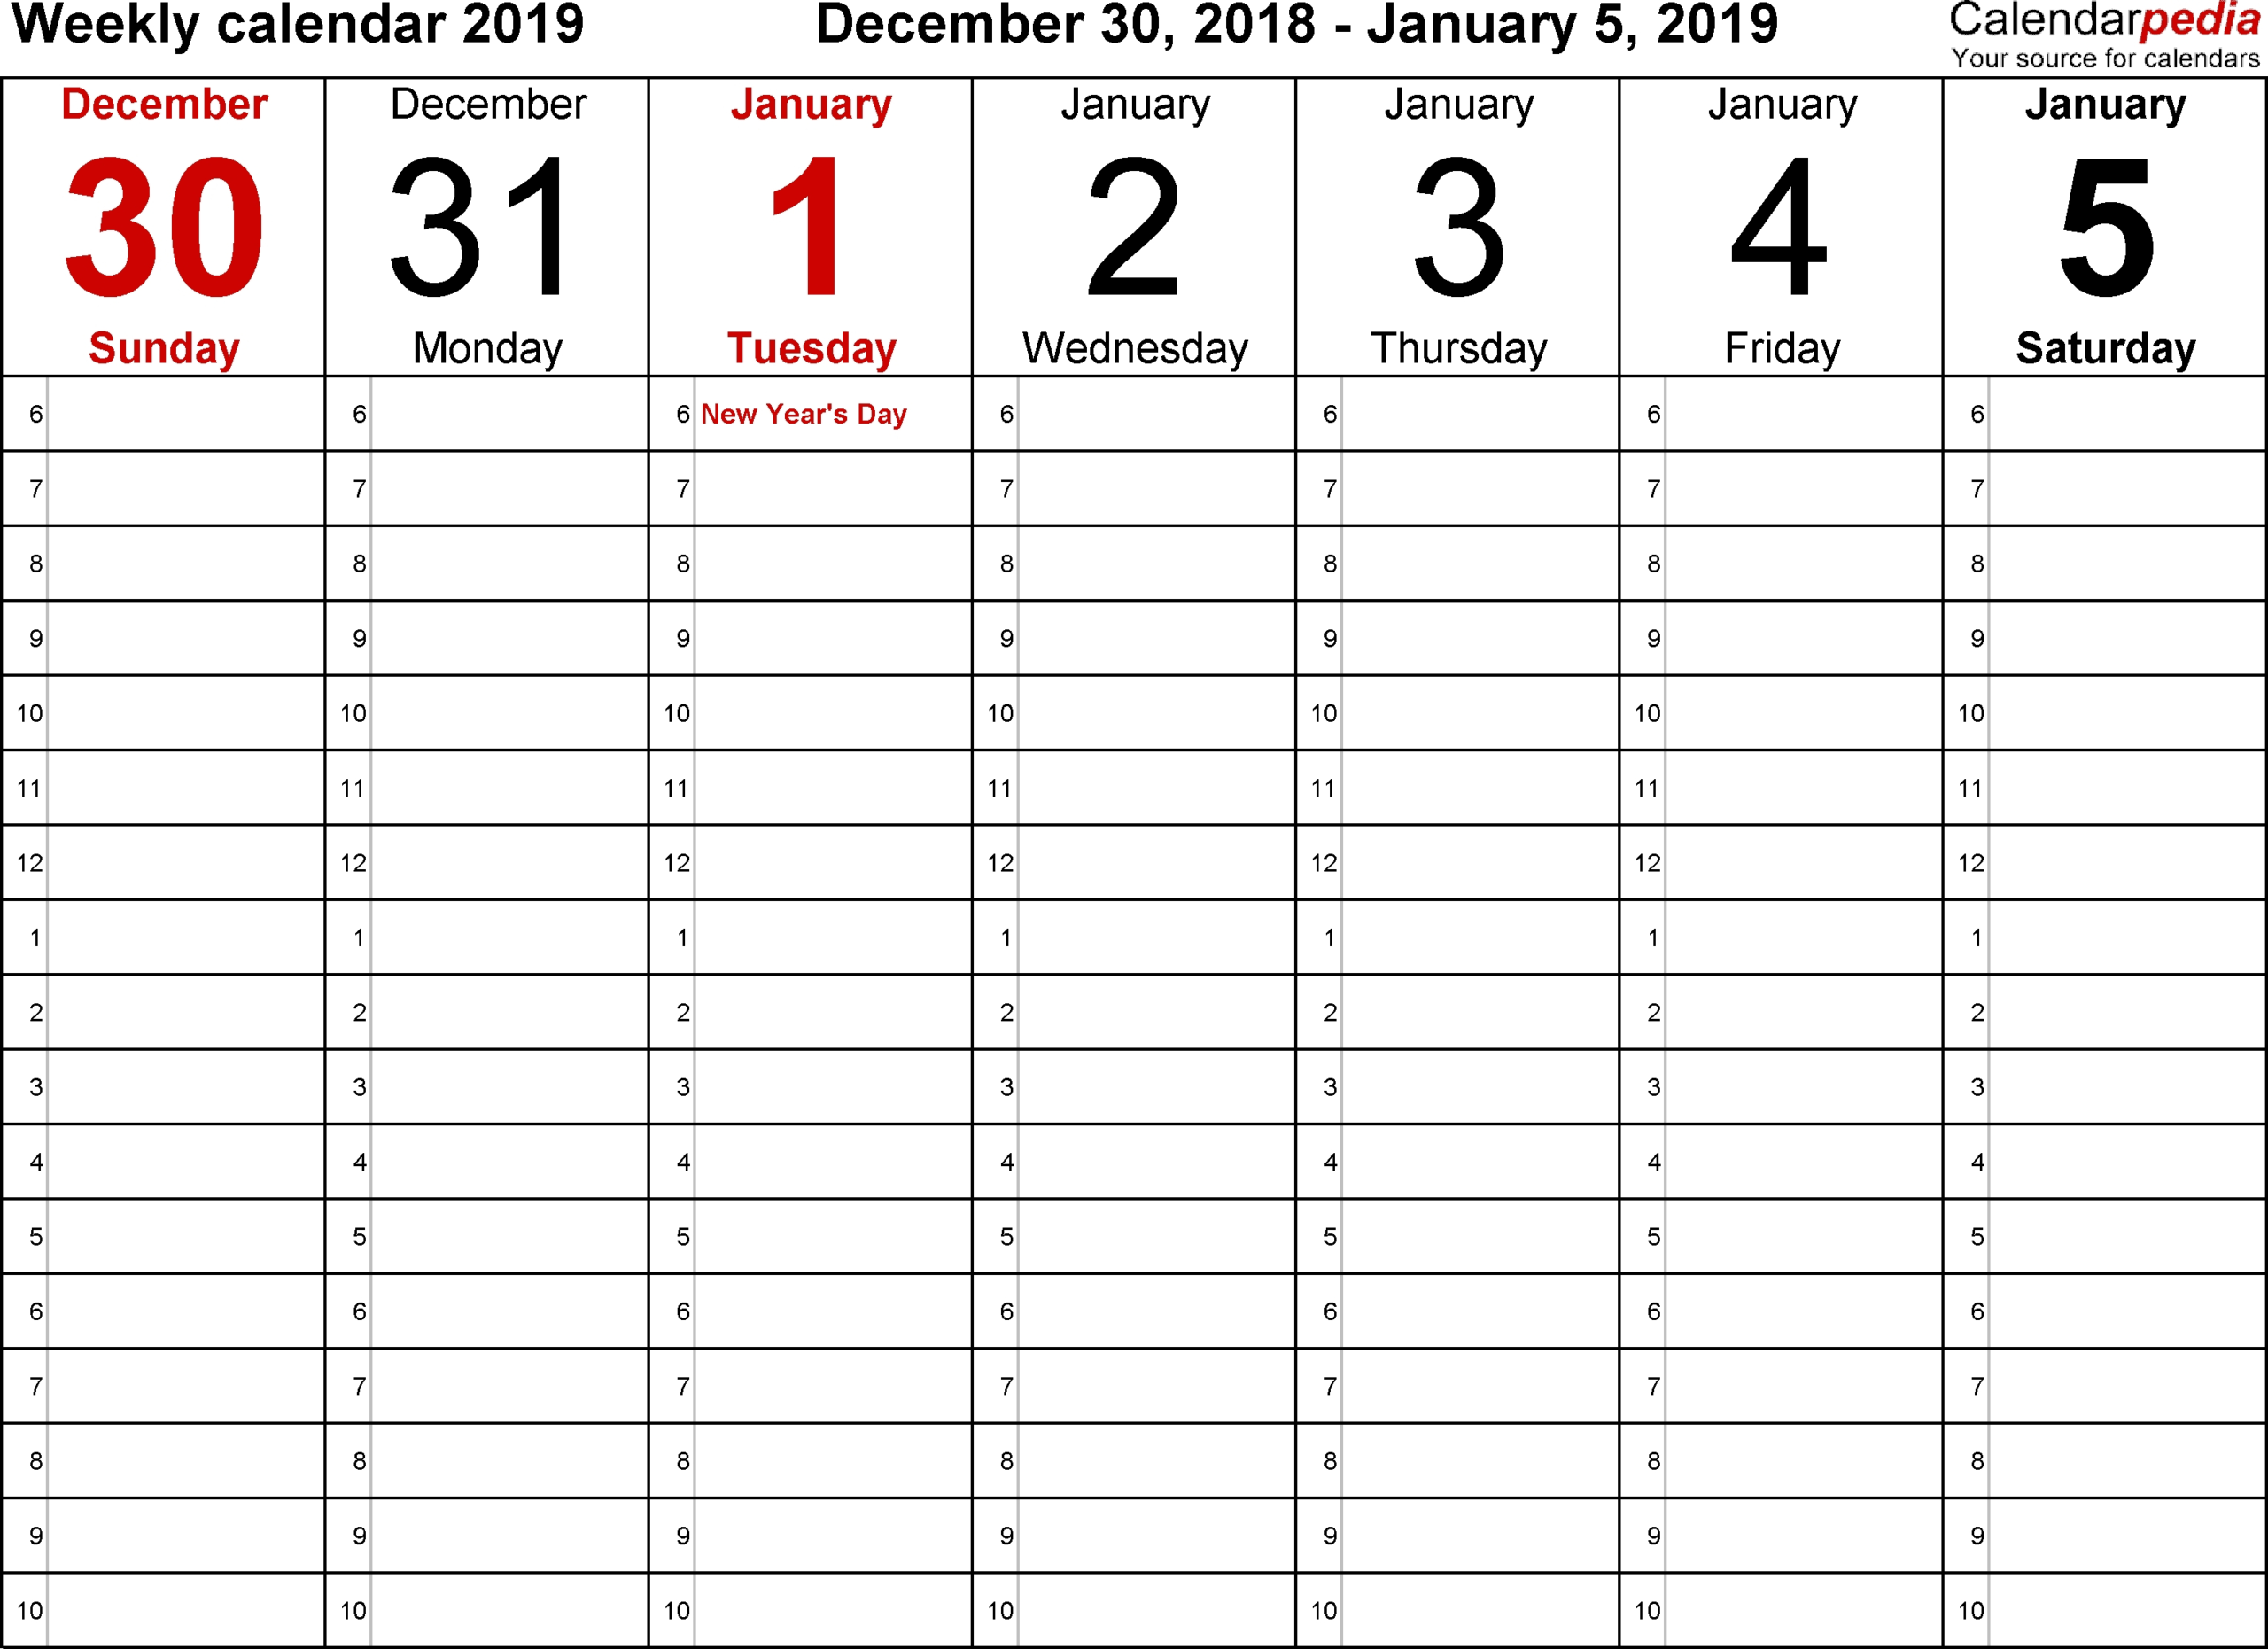 5 Day Week Blank Calendar With Time Slots Printable  Printable Calendar With Time